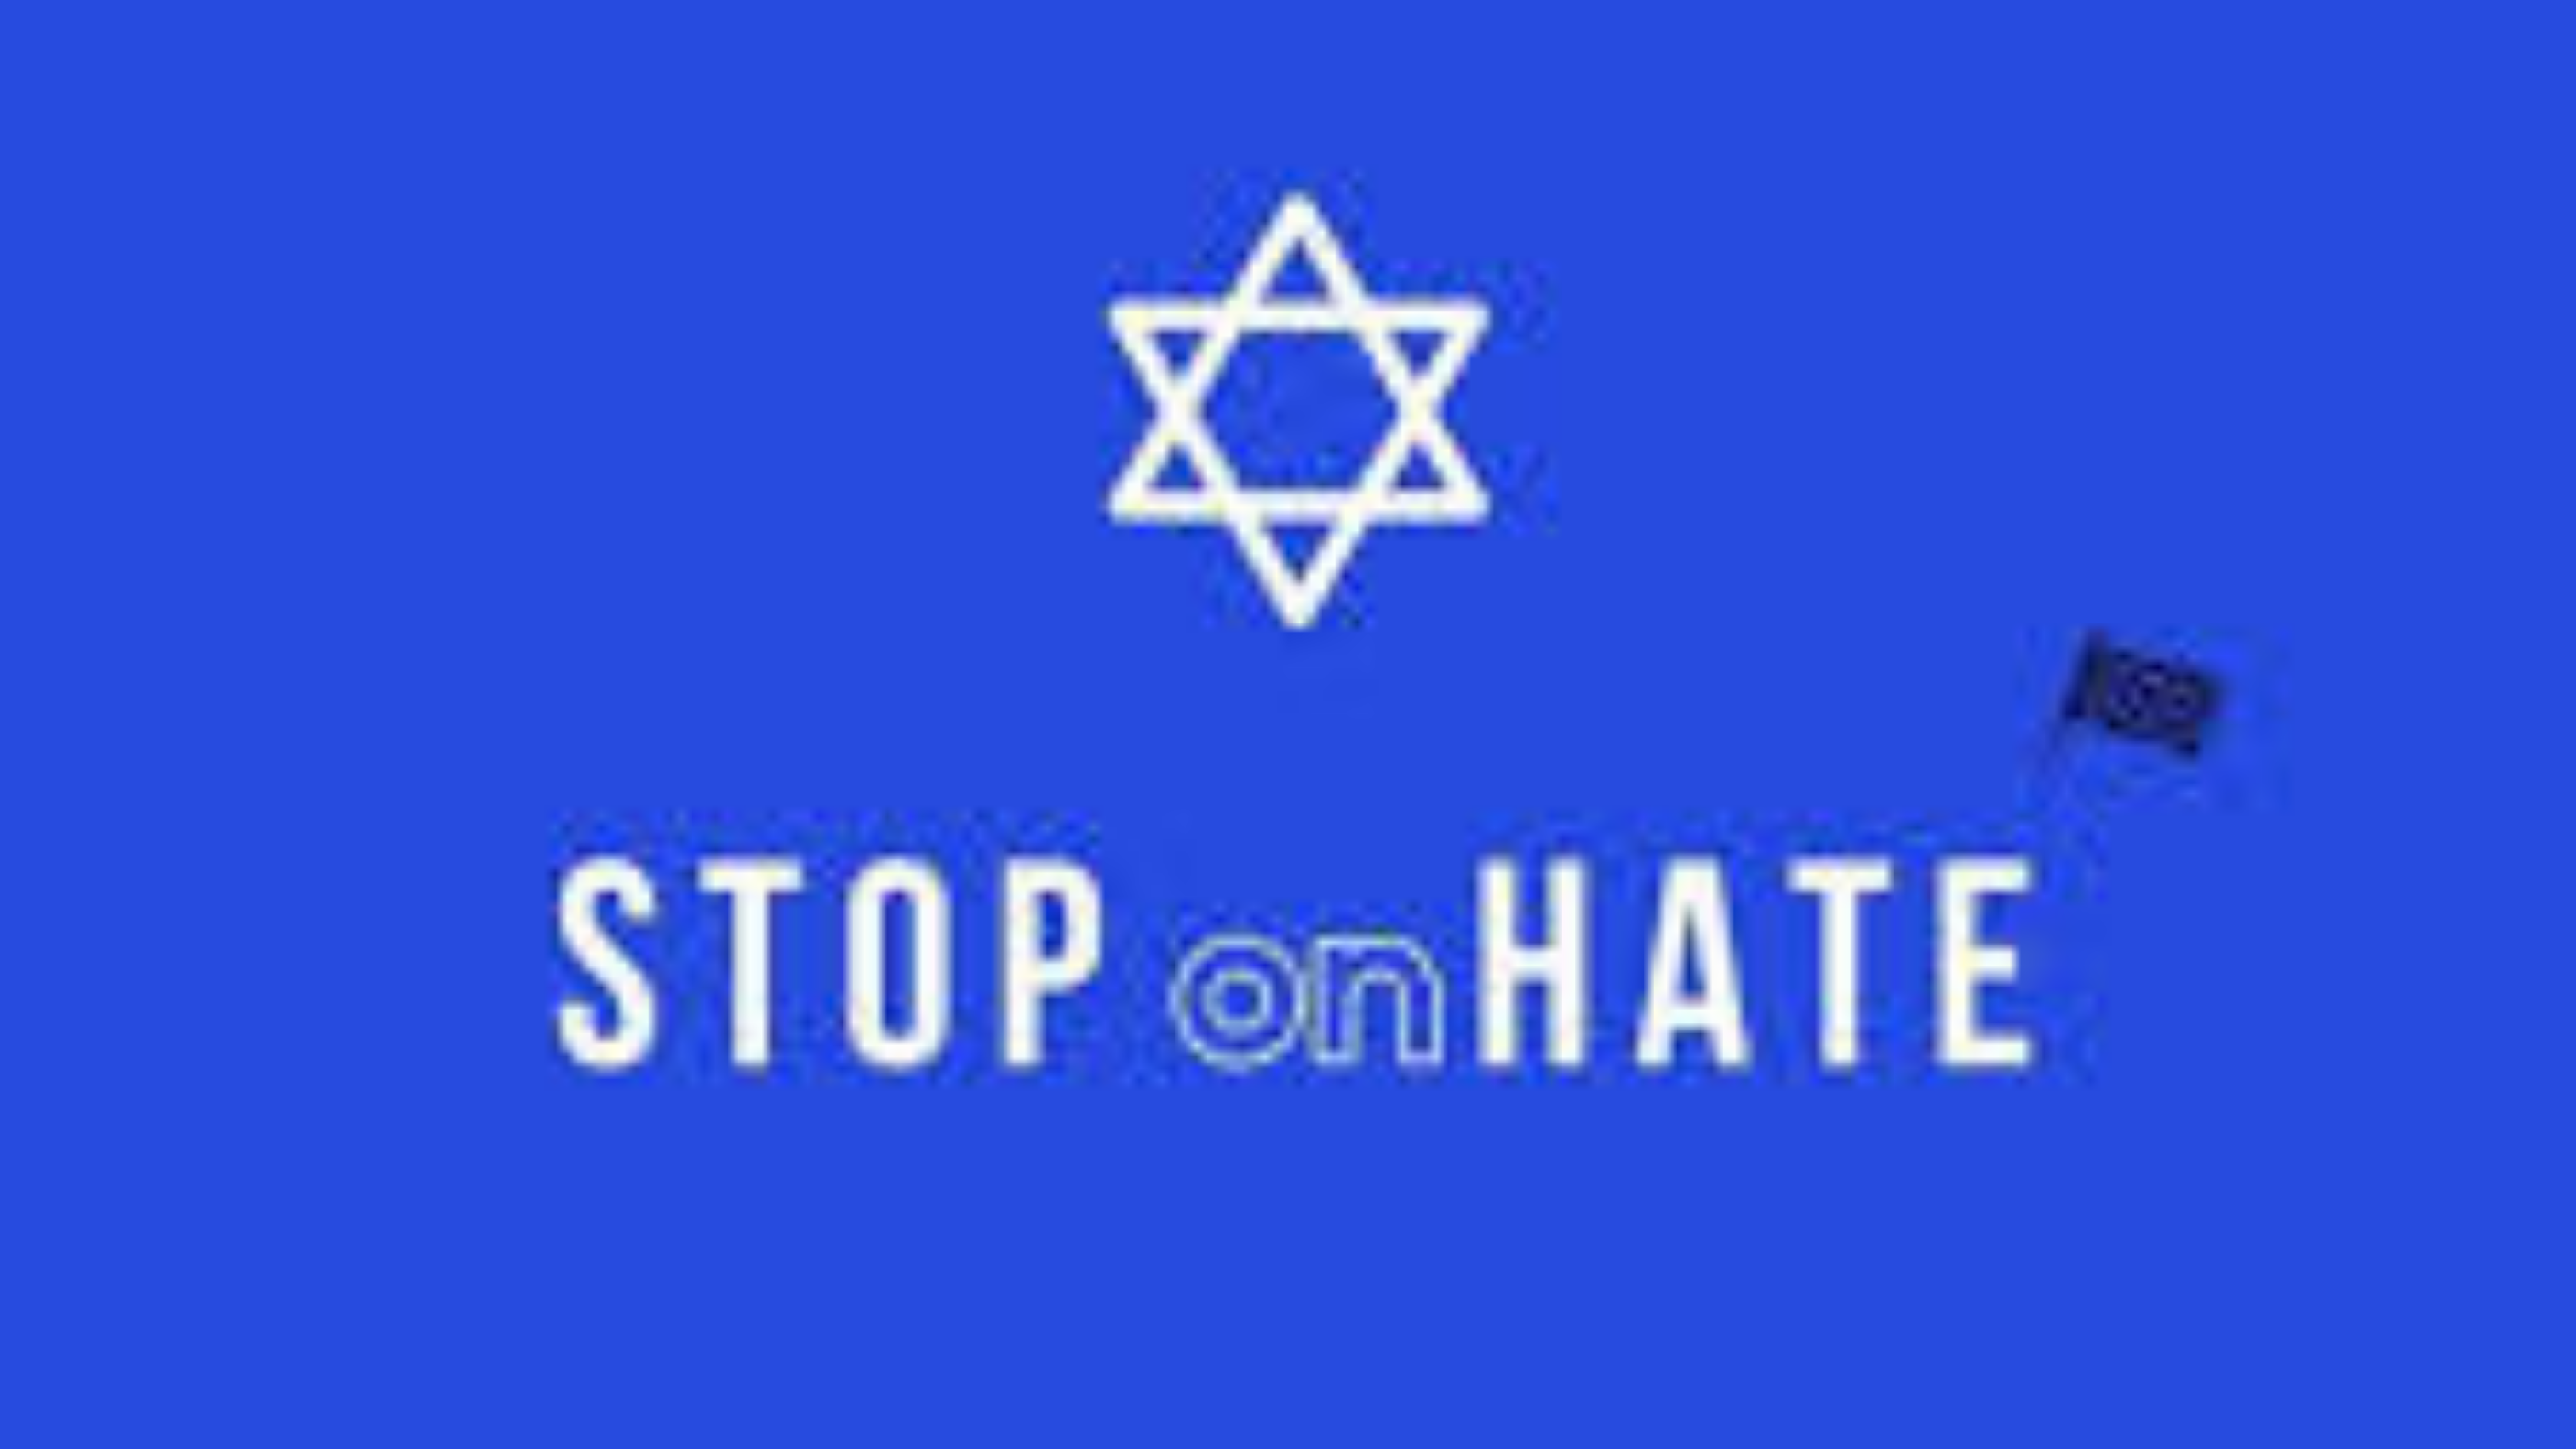 banner stop onhate